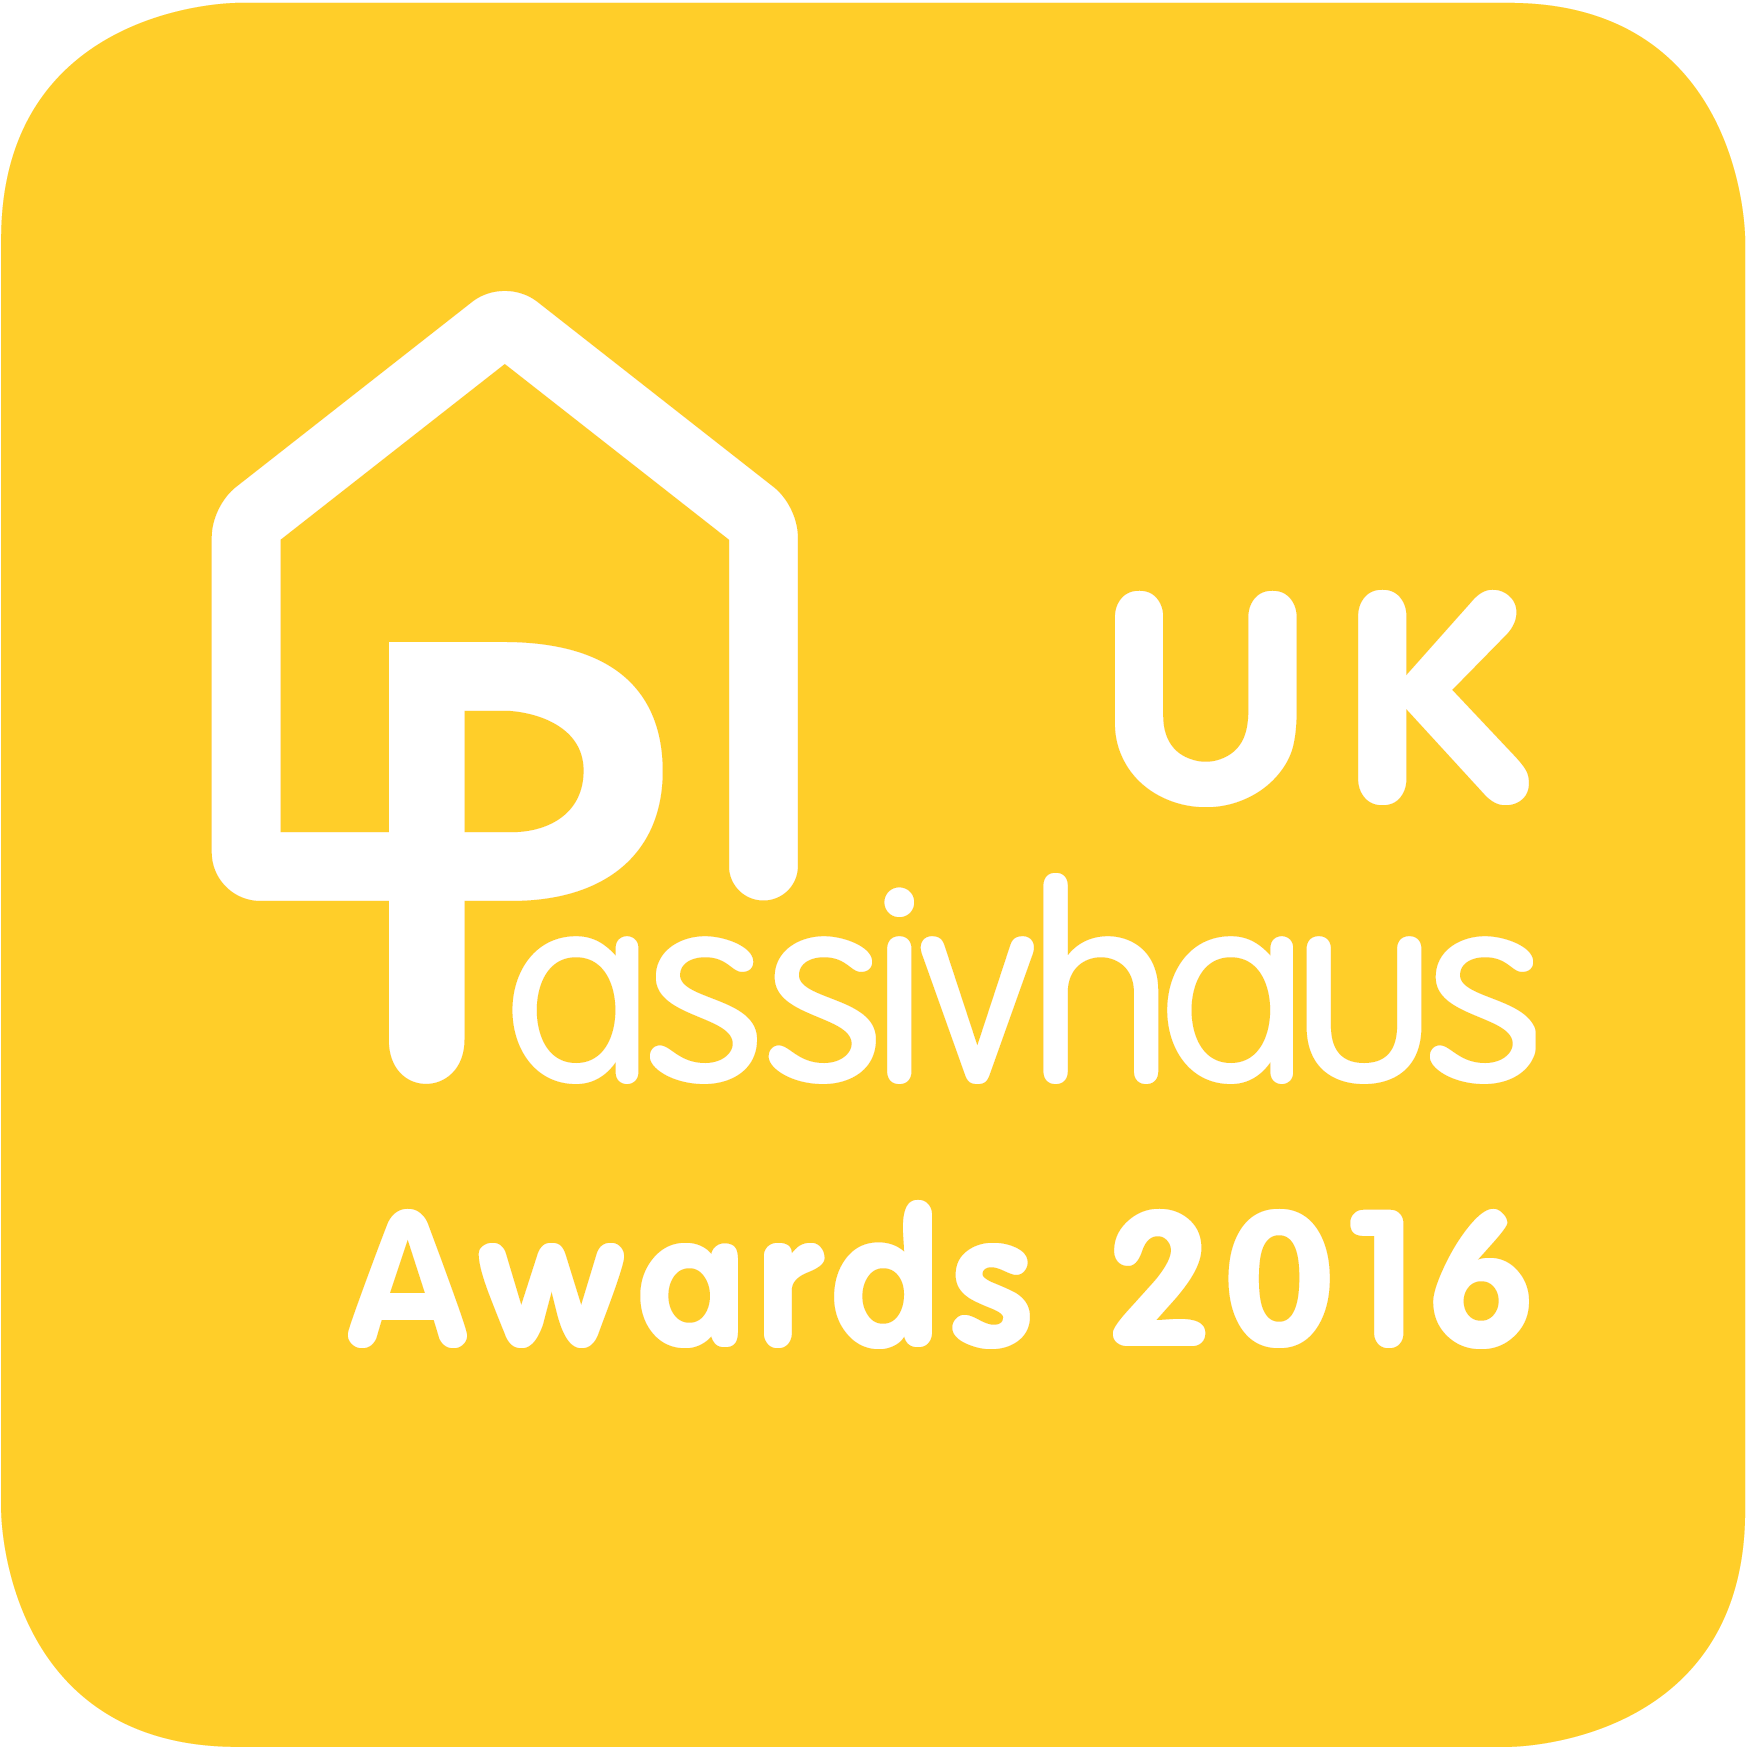 2016 UK Passivhaus Awards logo